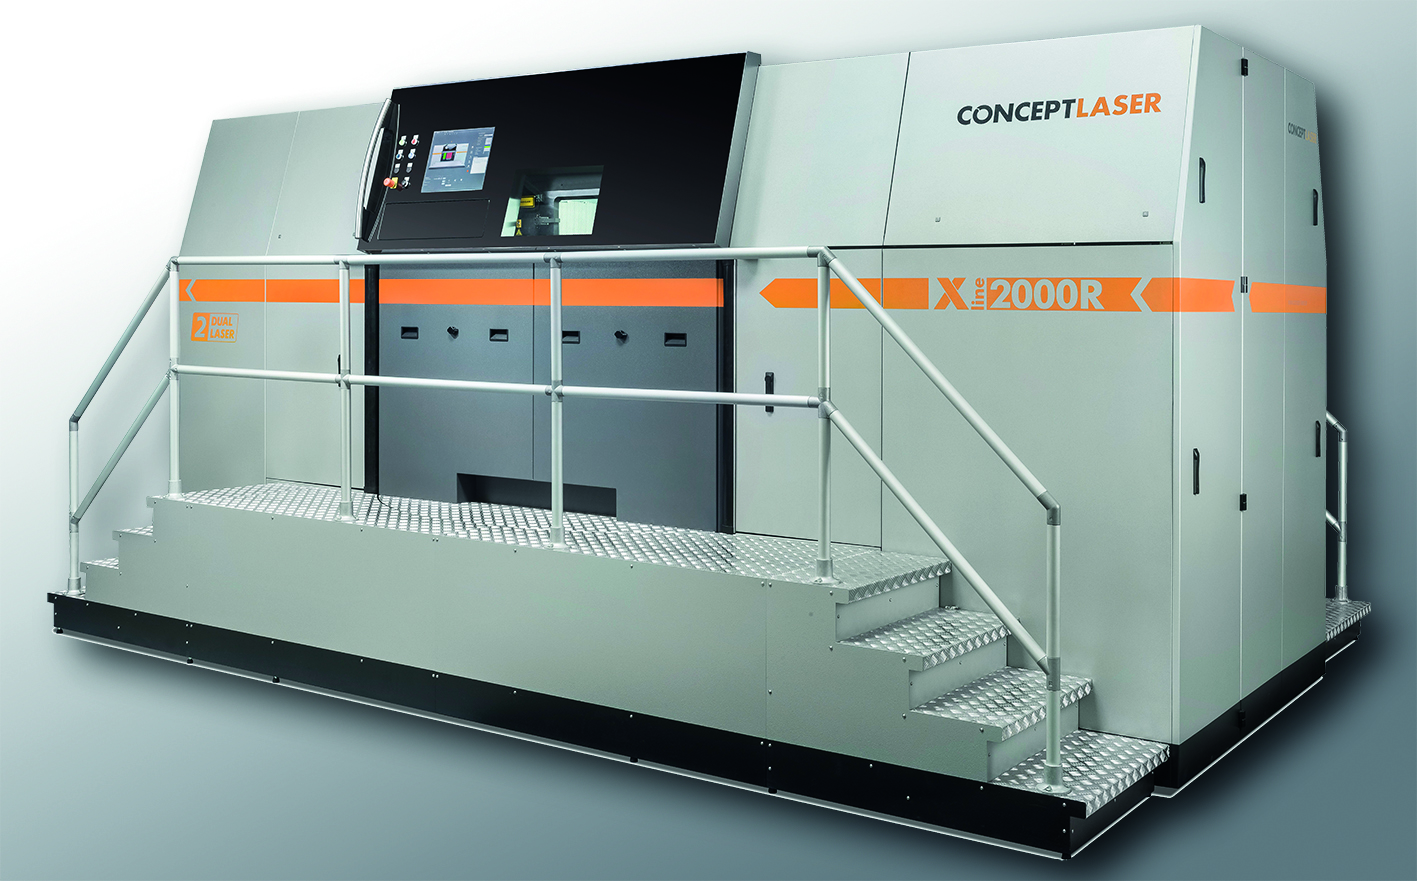 The Concept Laser XLine 2000R machine. Image via Concept Laser.